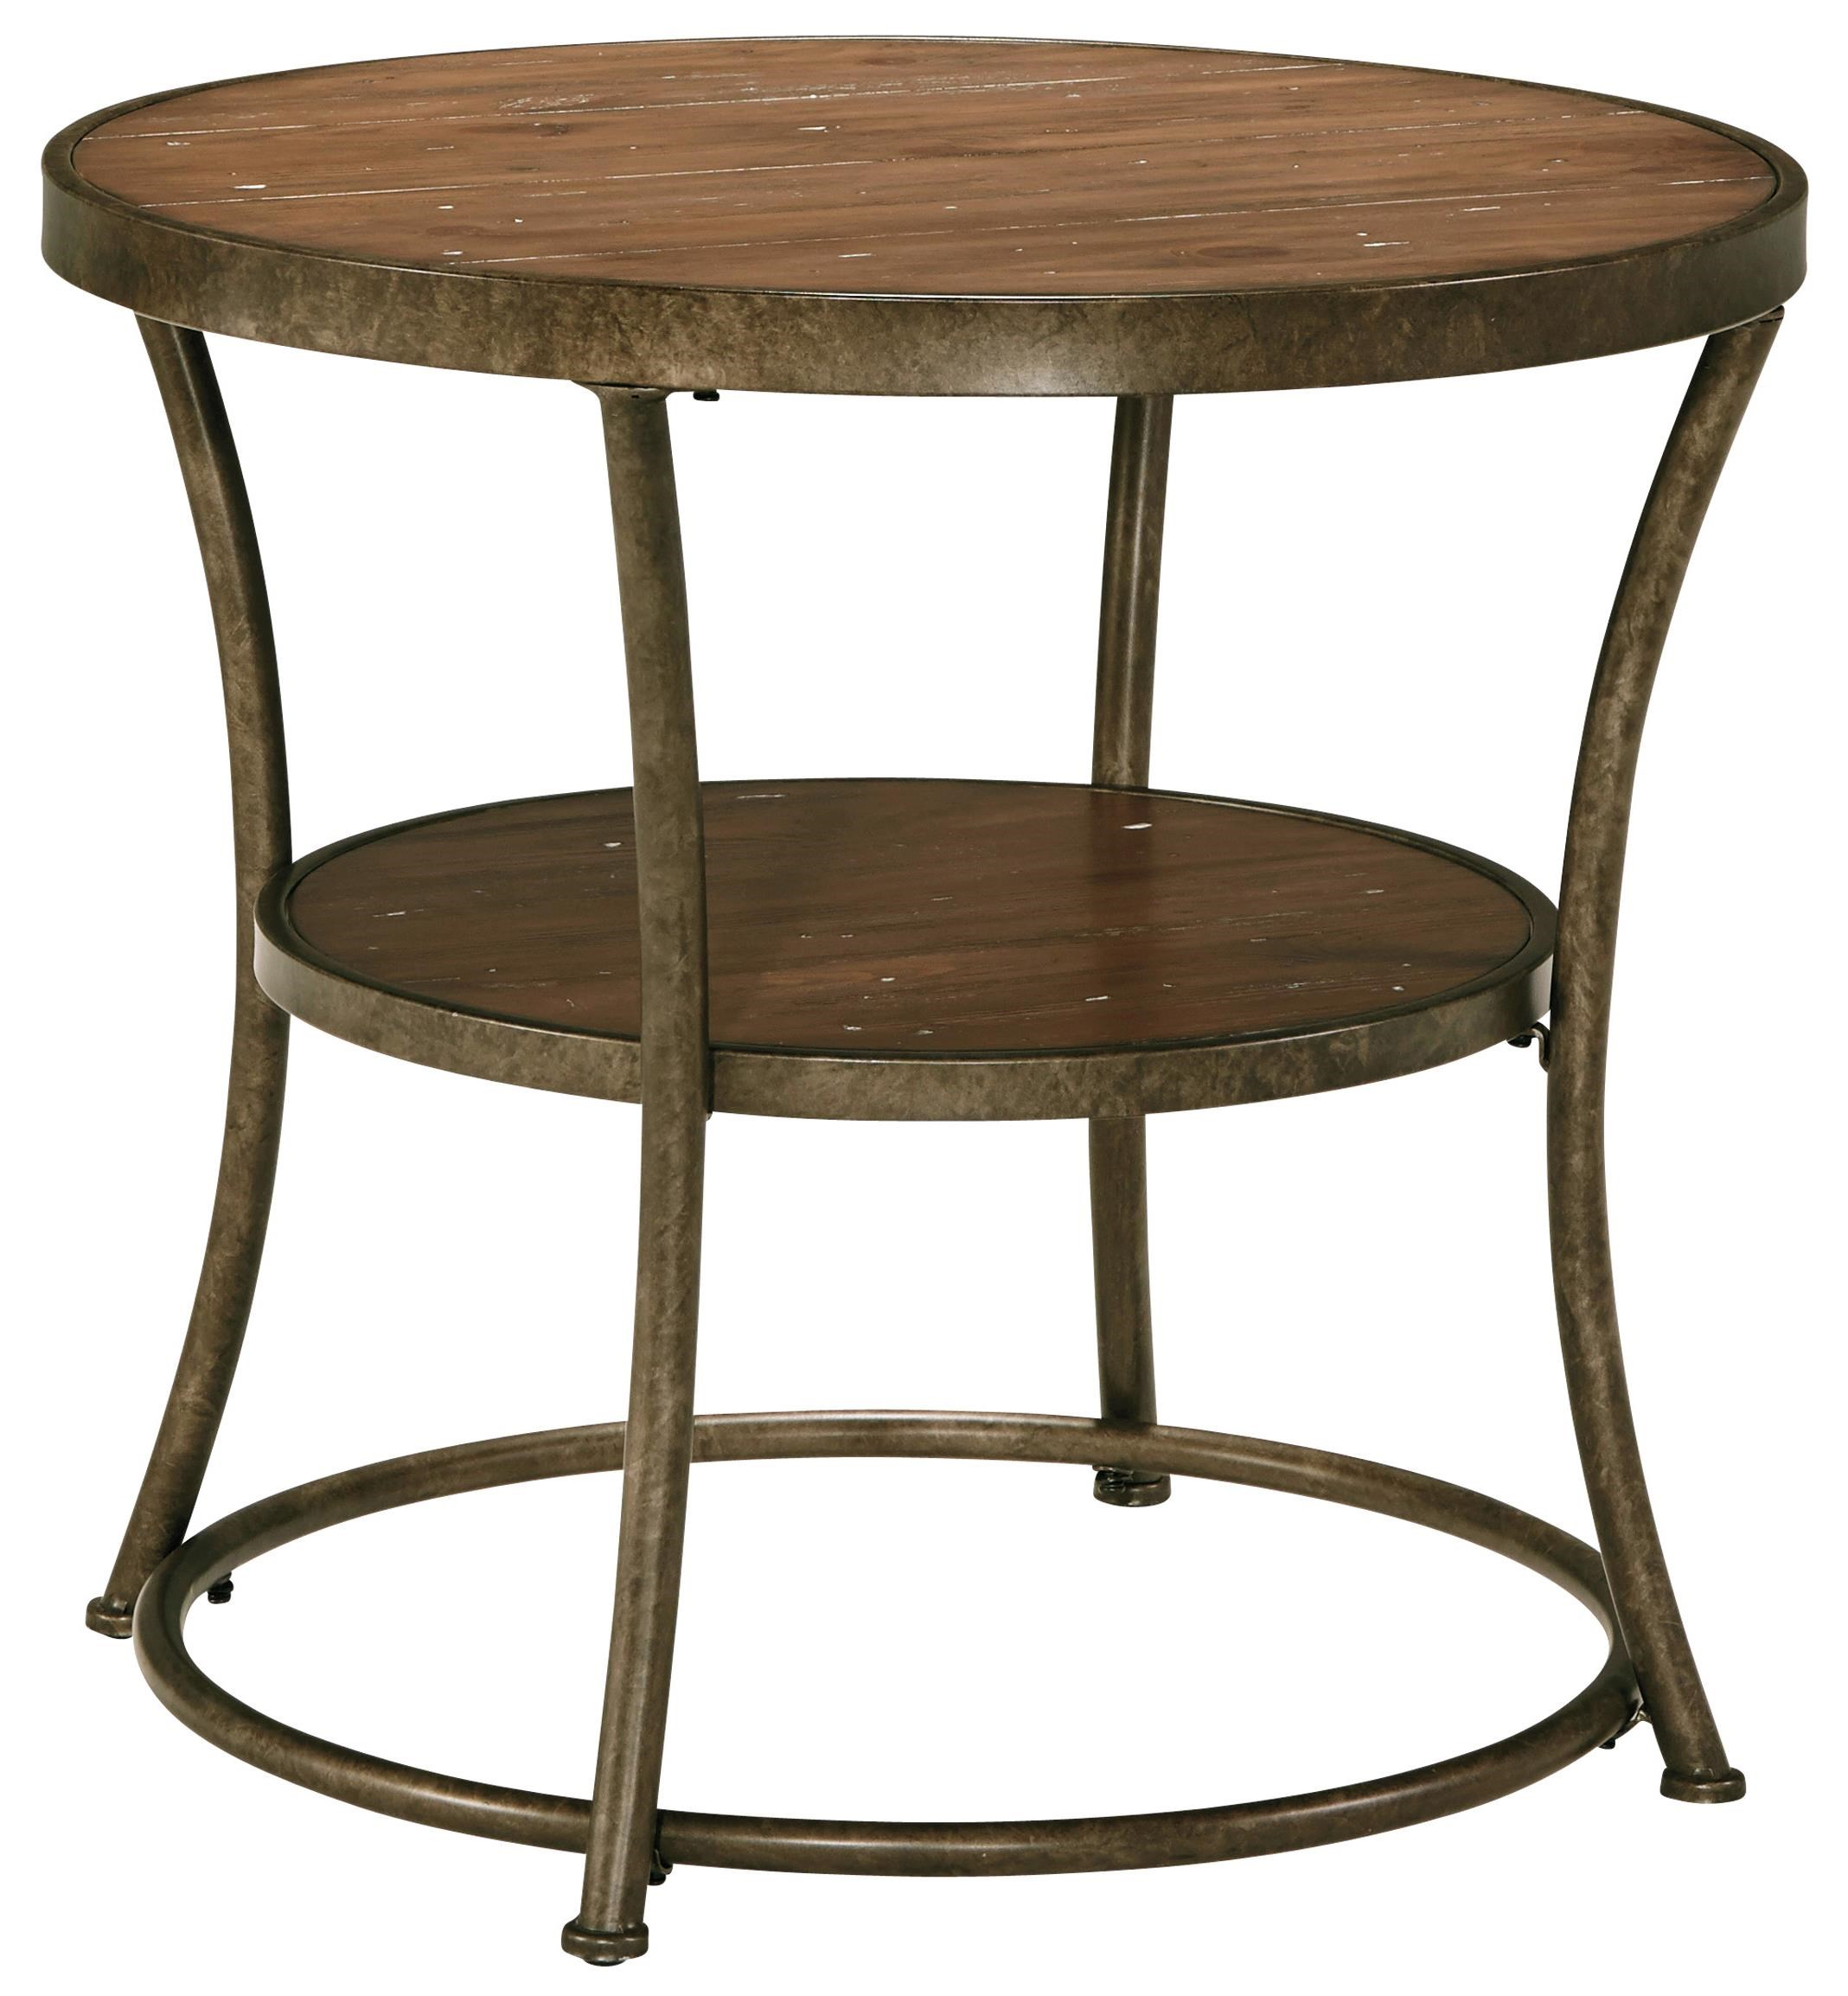 Beau Signature Design By Ashley NartinaRound End Table ...